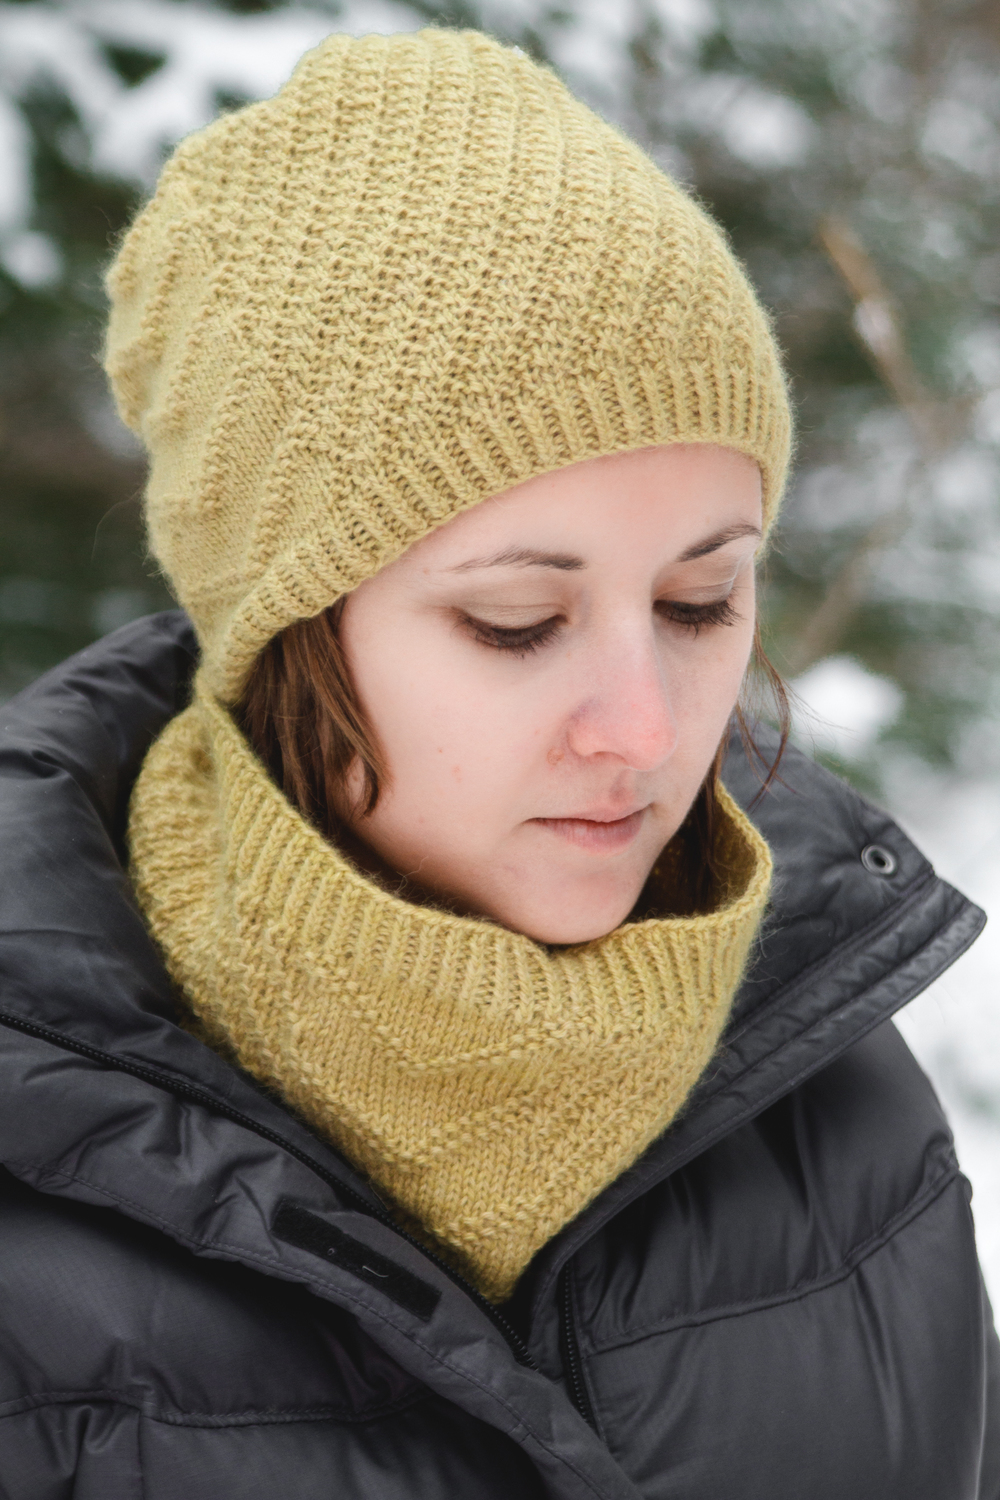 Calm Chaos Cowl, in Road to China Light, Citrine colorway